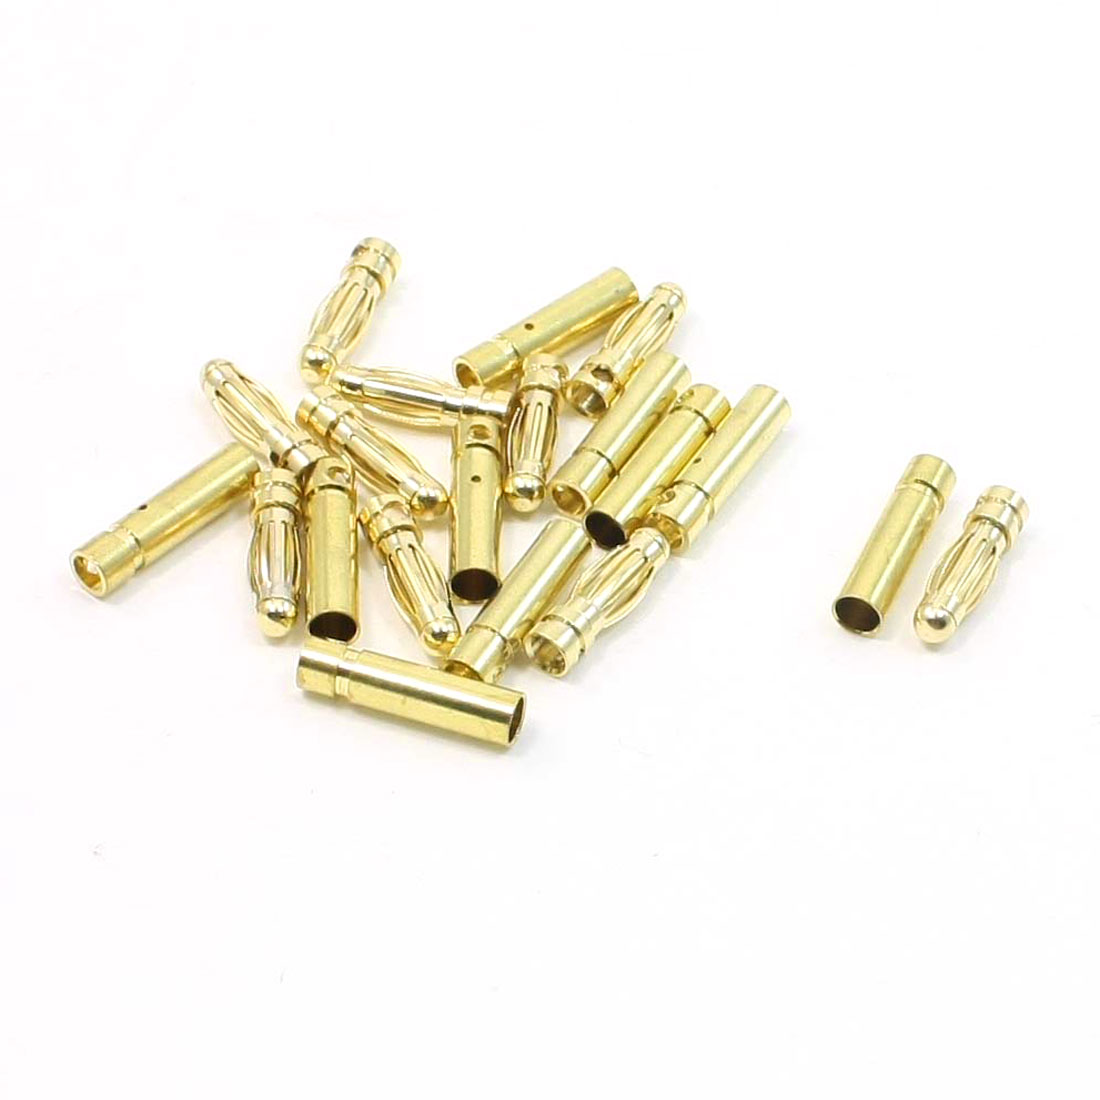 10 Pairs Gold Tone Metal 3mm Dia Audio Banana PLug Connectors